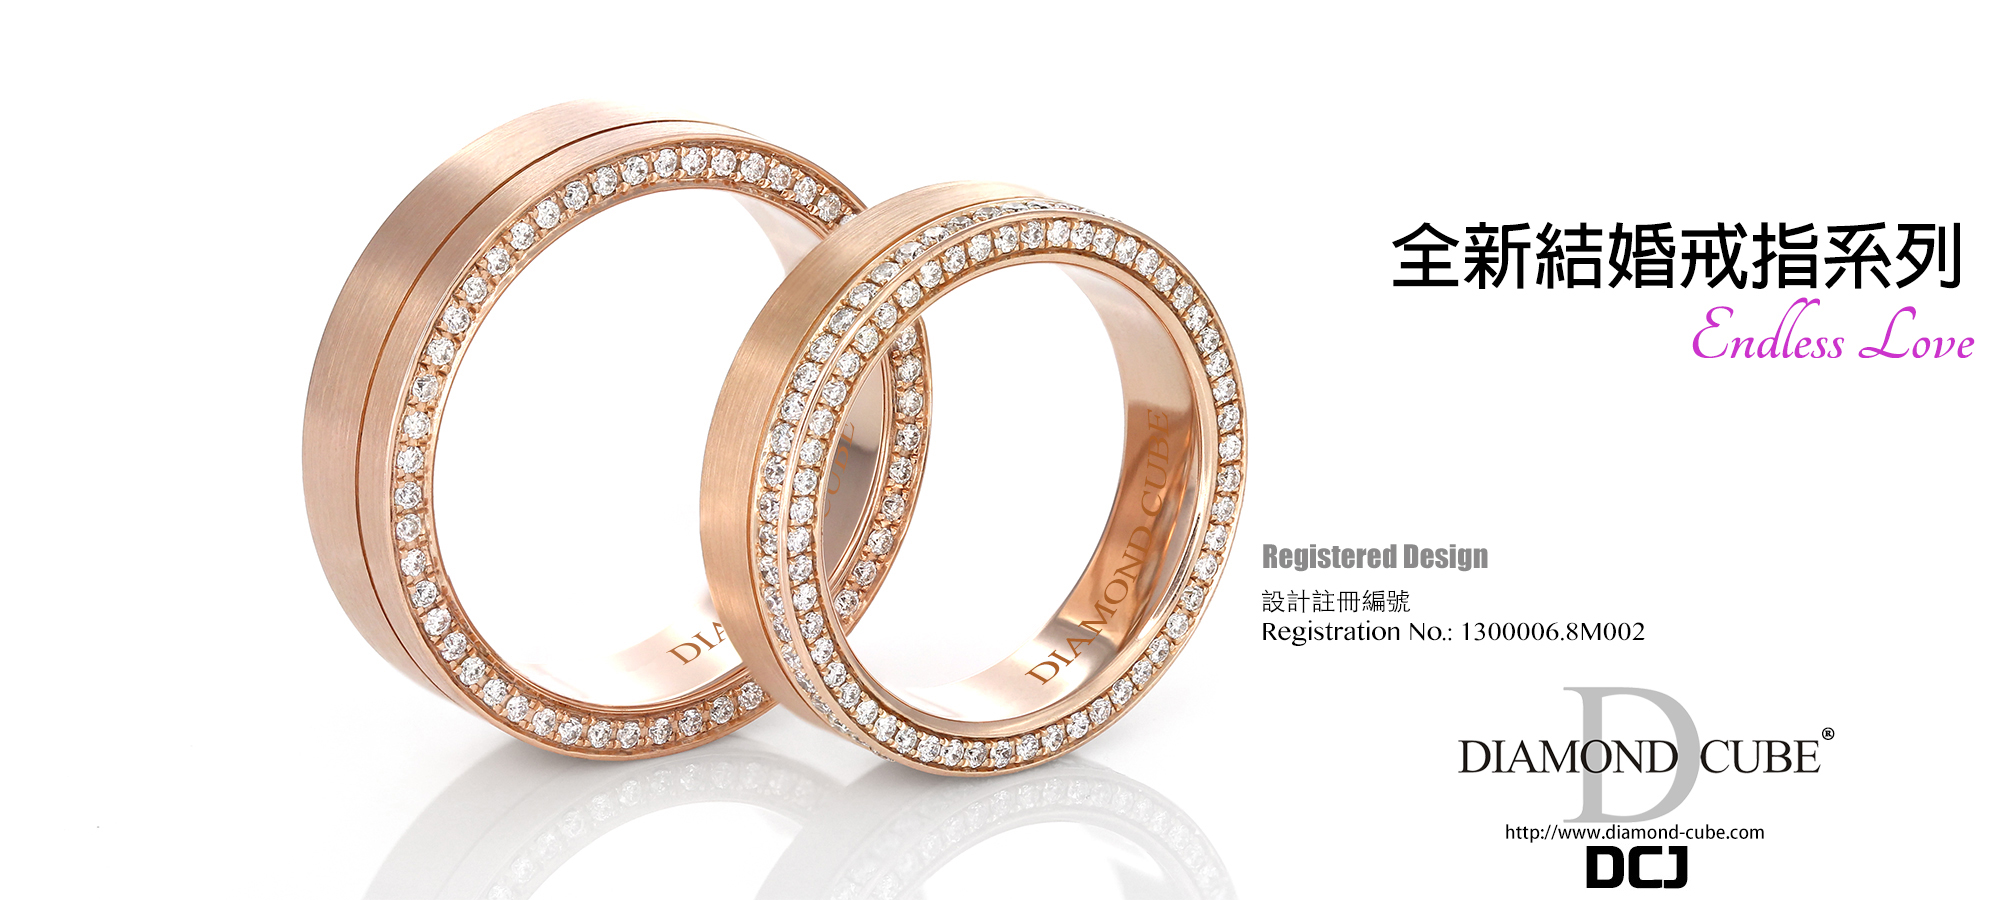 Diamond Cube - 婚戒 - Rose Gold - Endless Love